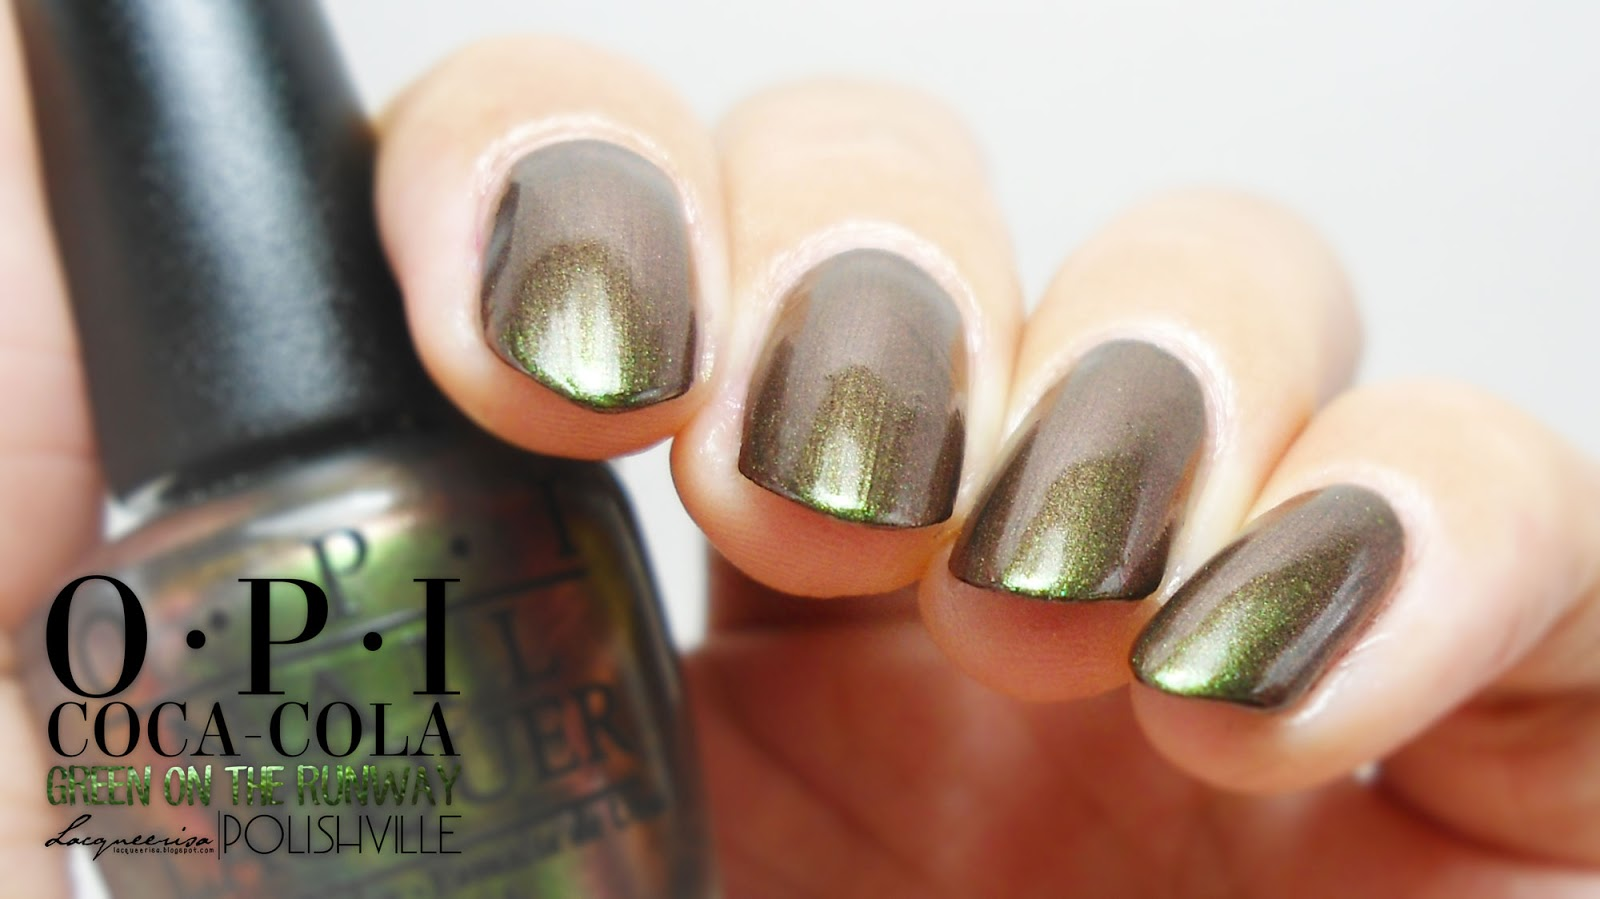 OPI Green On The Runway, LacqueerisaXPolishville